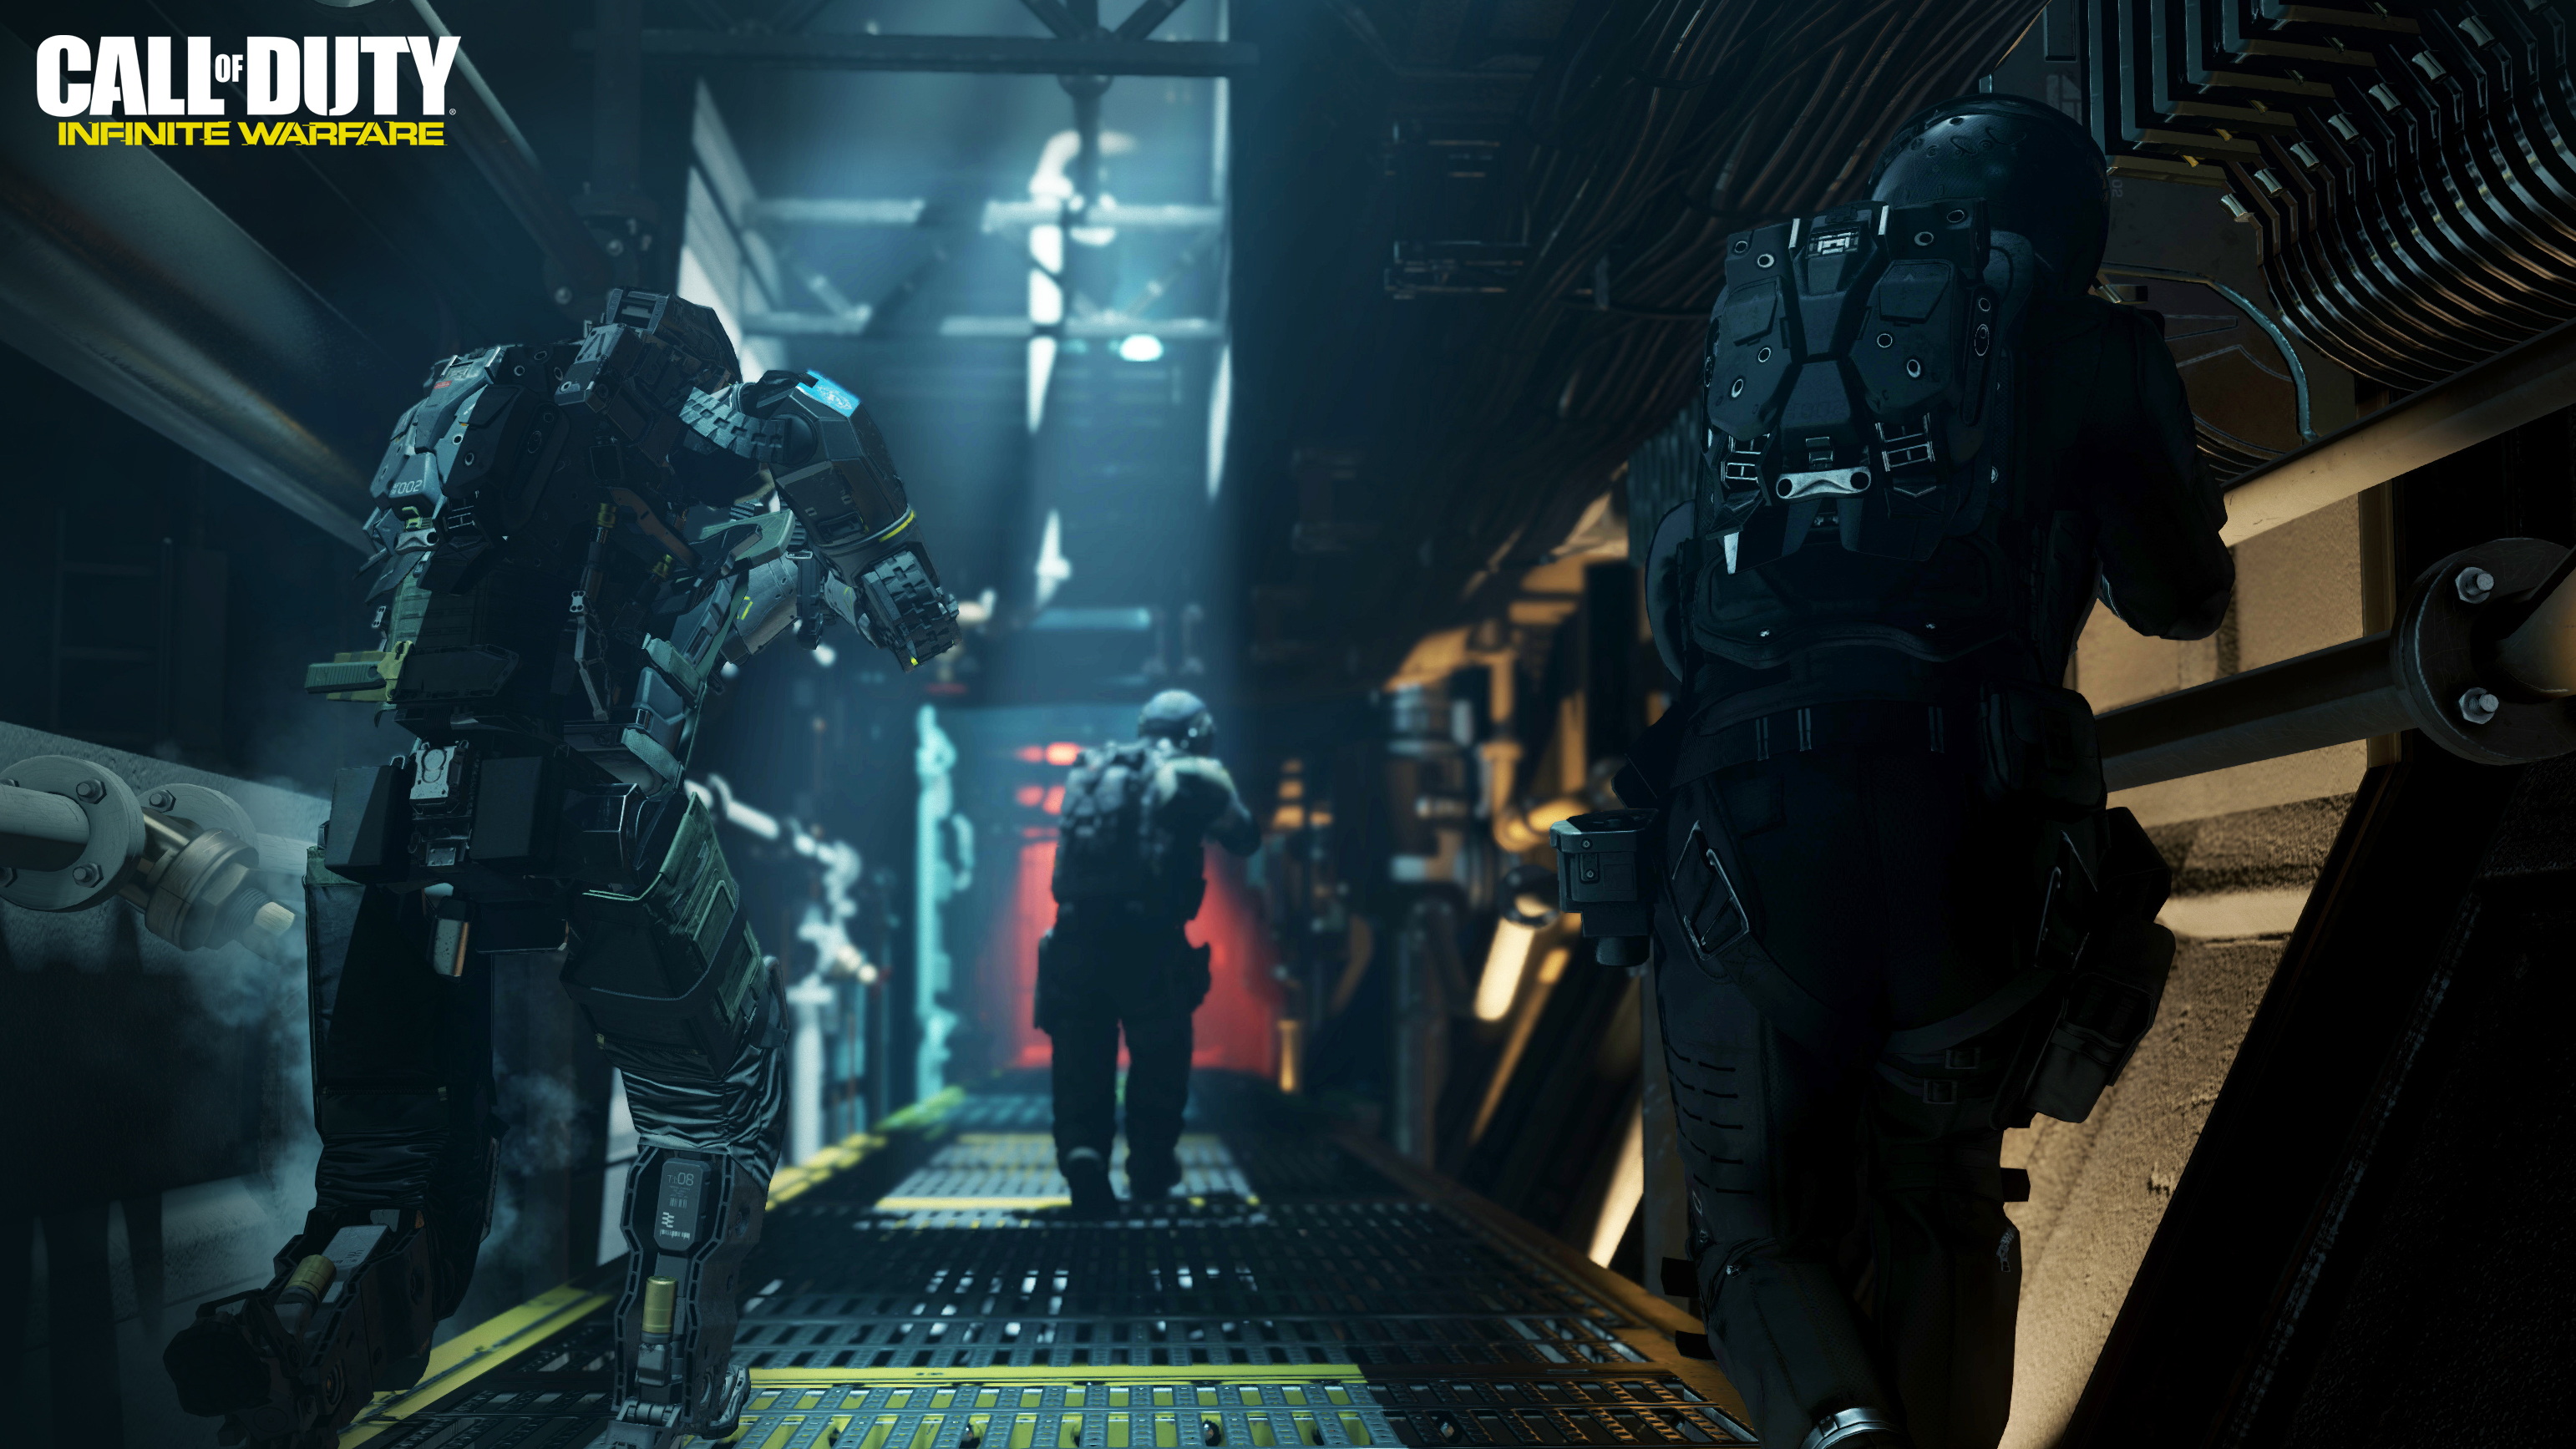 cod-iw_e3_ship-assault-corridor_wm